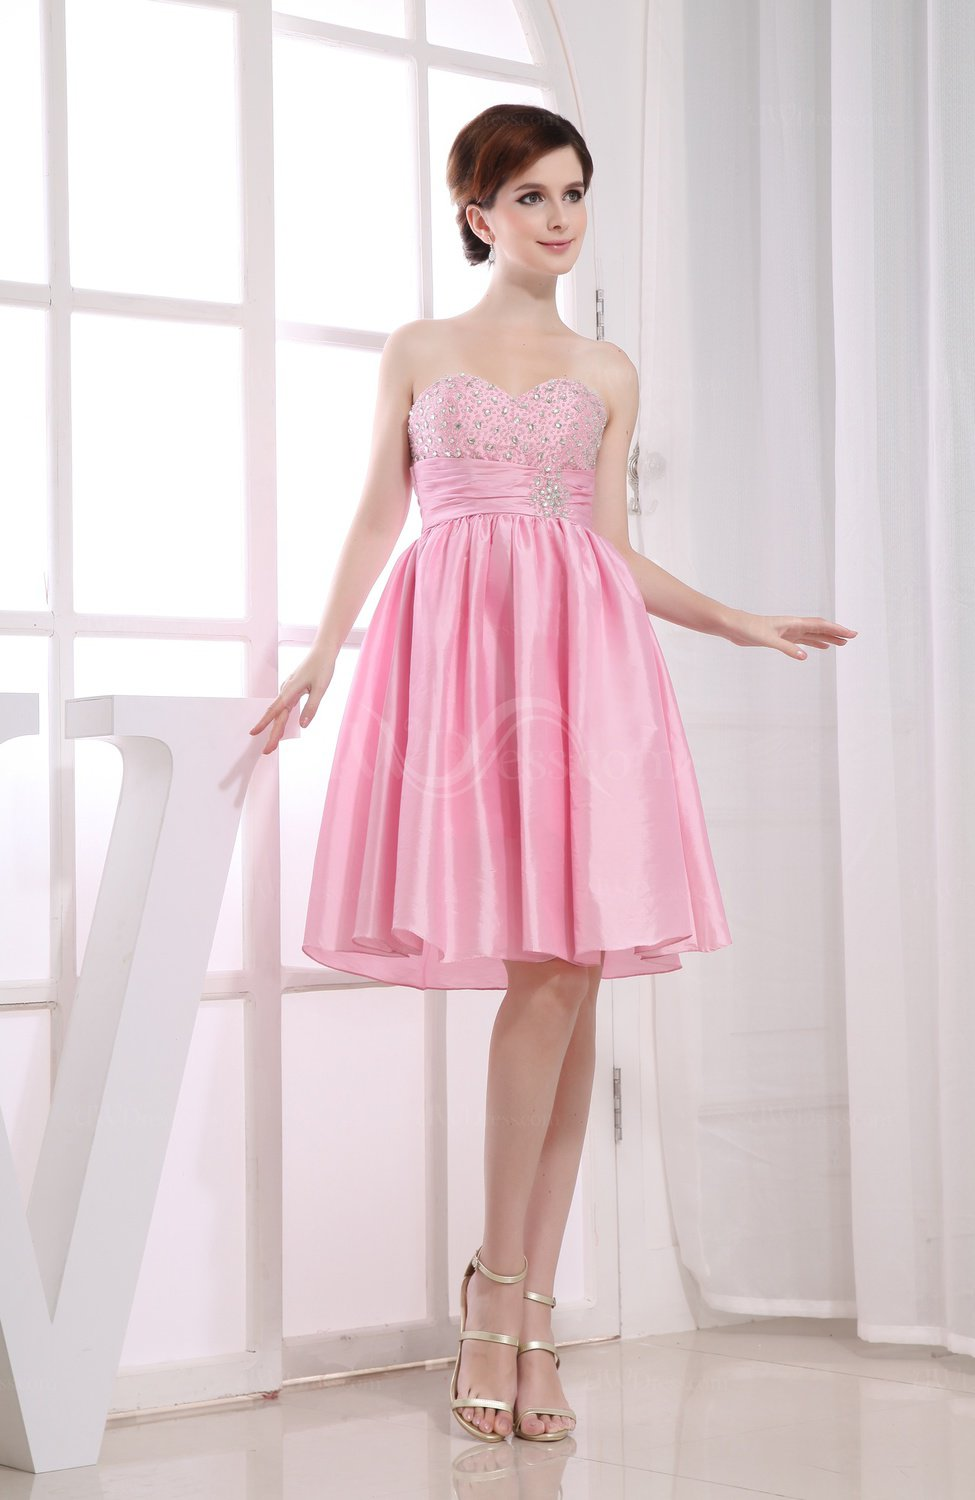 2d0c932257c8 Baby Pink Casual Sleeveless Taffeta Knee Length Sequin Homecoming Dresses  (Style D39753)